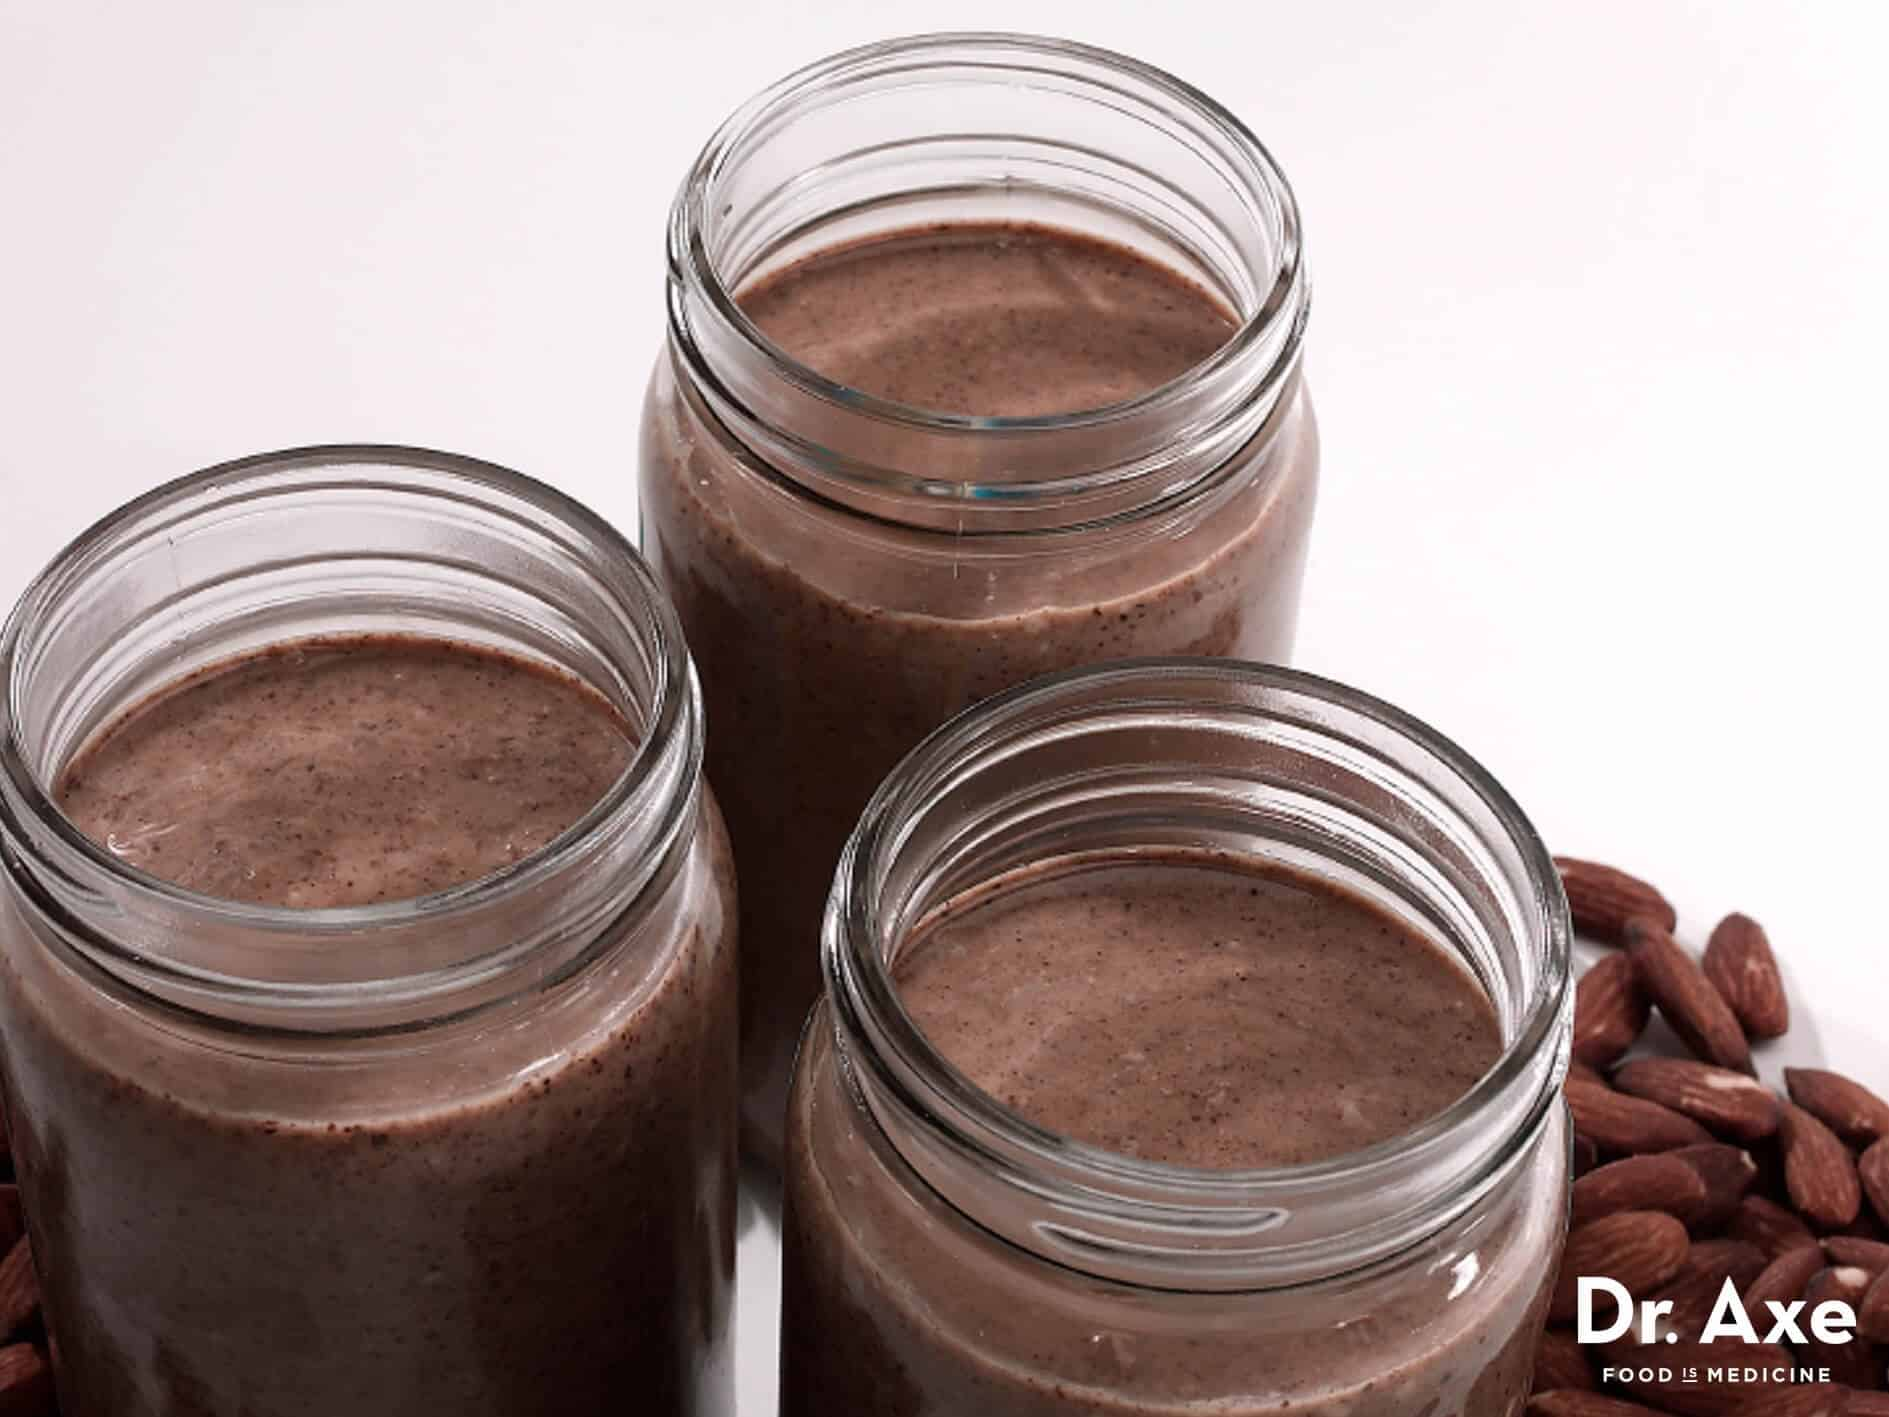 Dark chocolate almond butter recipe - Dr. Axe